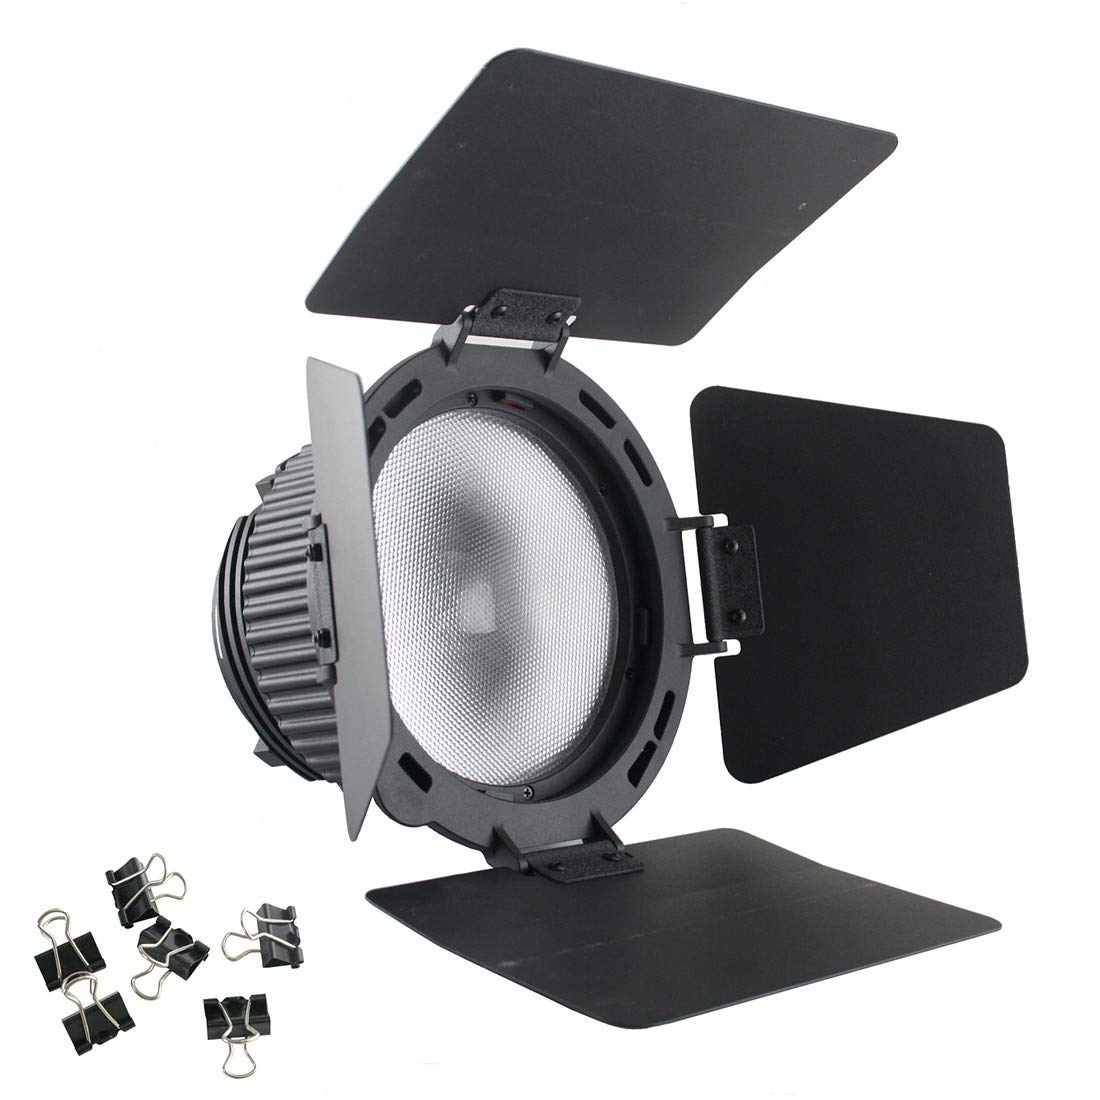 EXMAX CN-18X Fresnel Lens Focusing Adapter Lens kit Photography Studio Rotating Focusing Lens with Barn Door Compatible with Nanguang CN-P100WA Photography Bowens-fit Spotlight by EXMAX